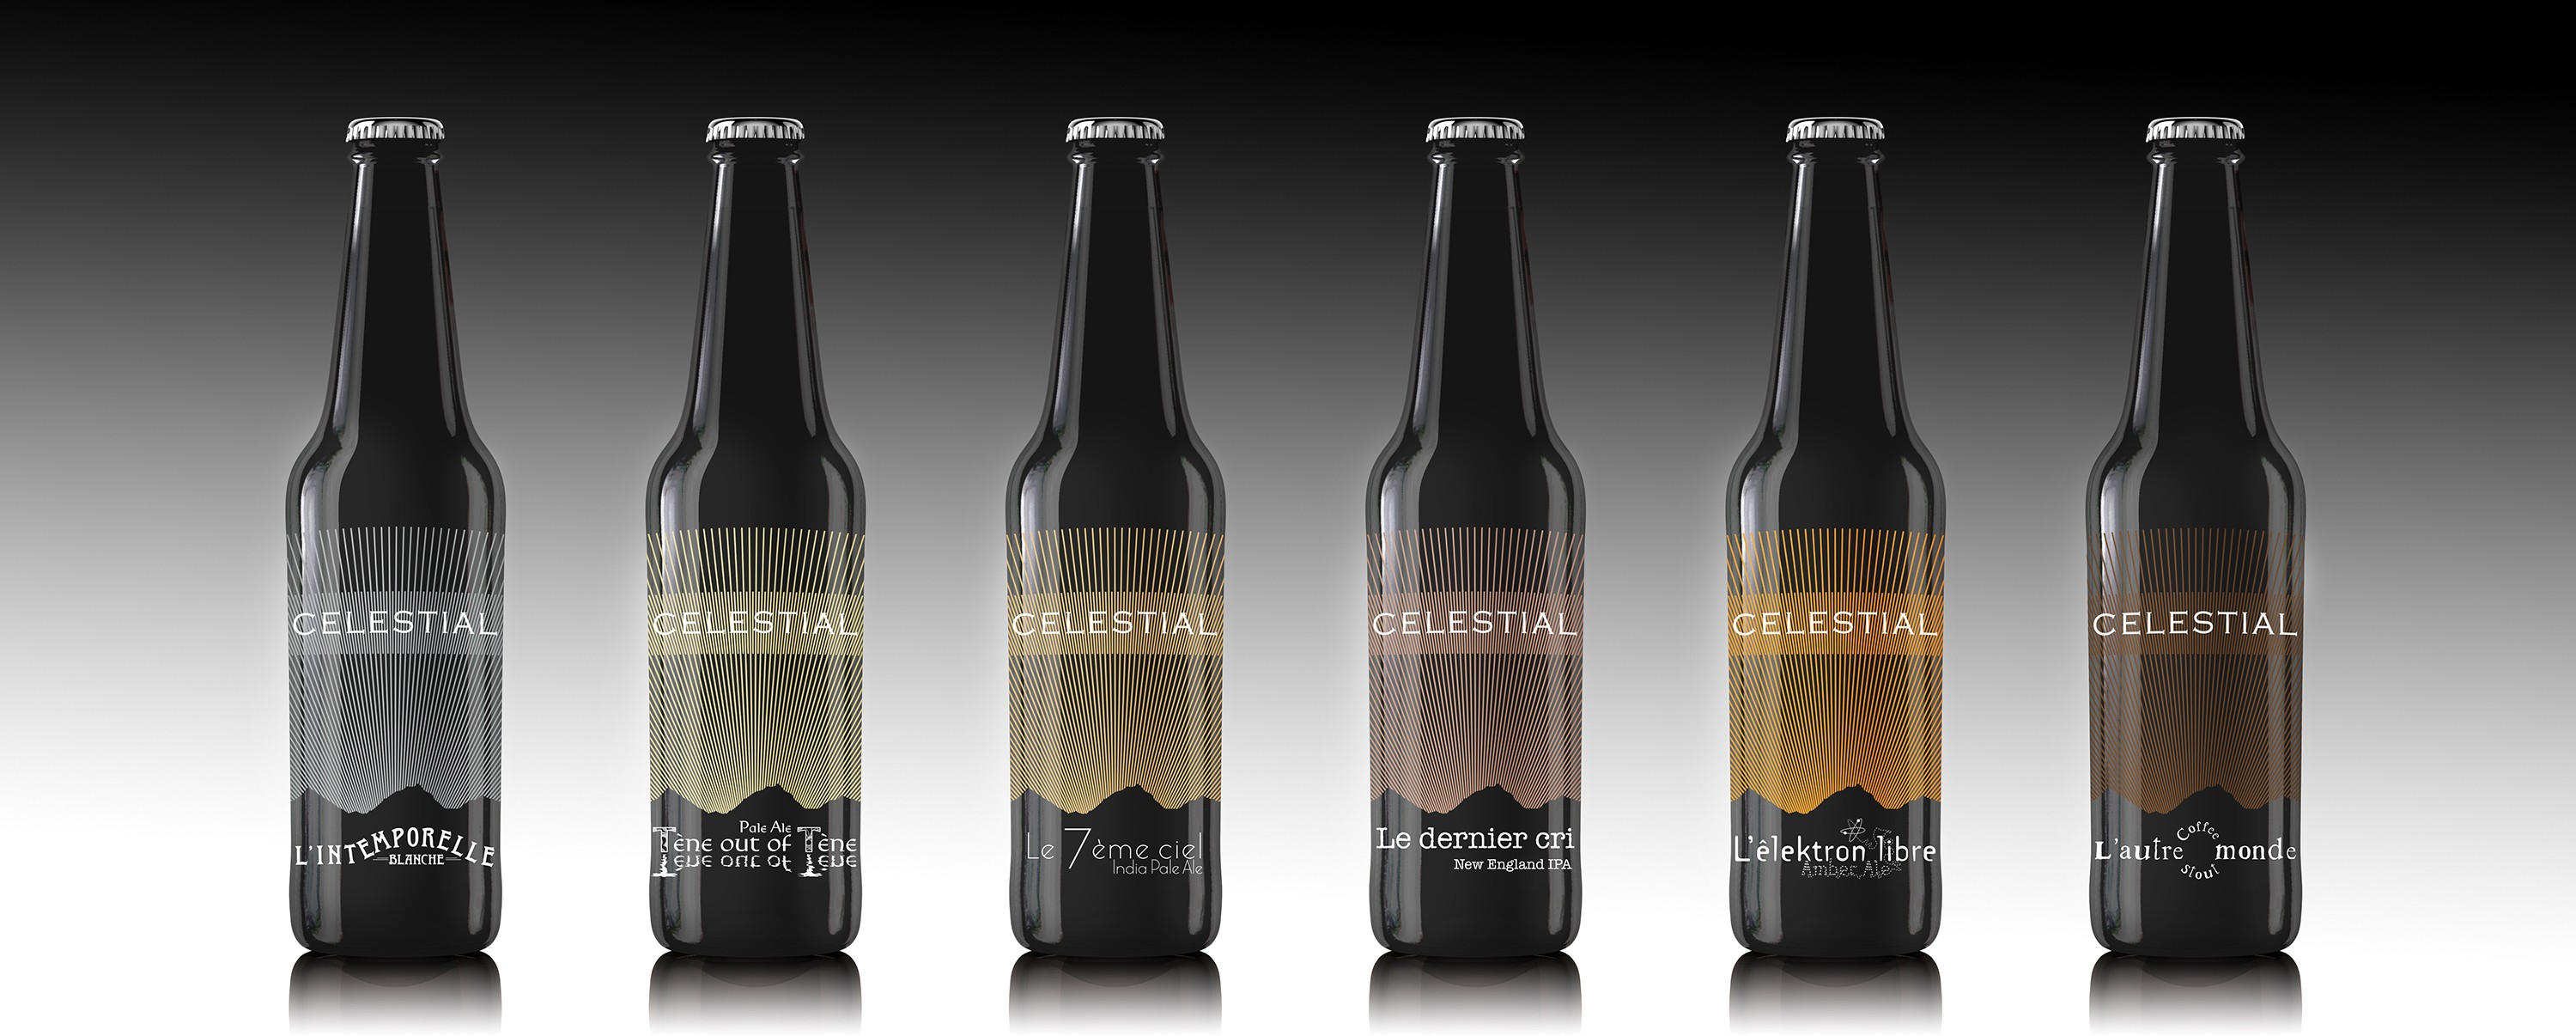 Celestials beer selection